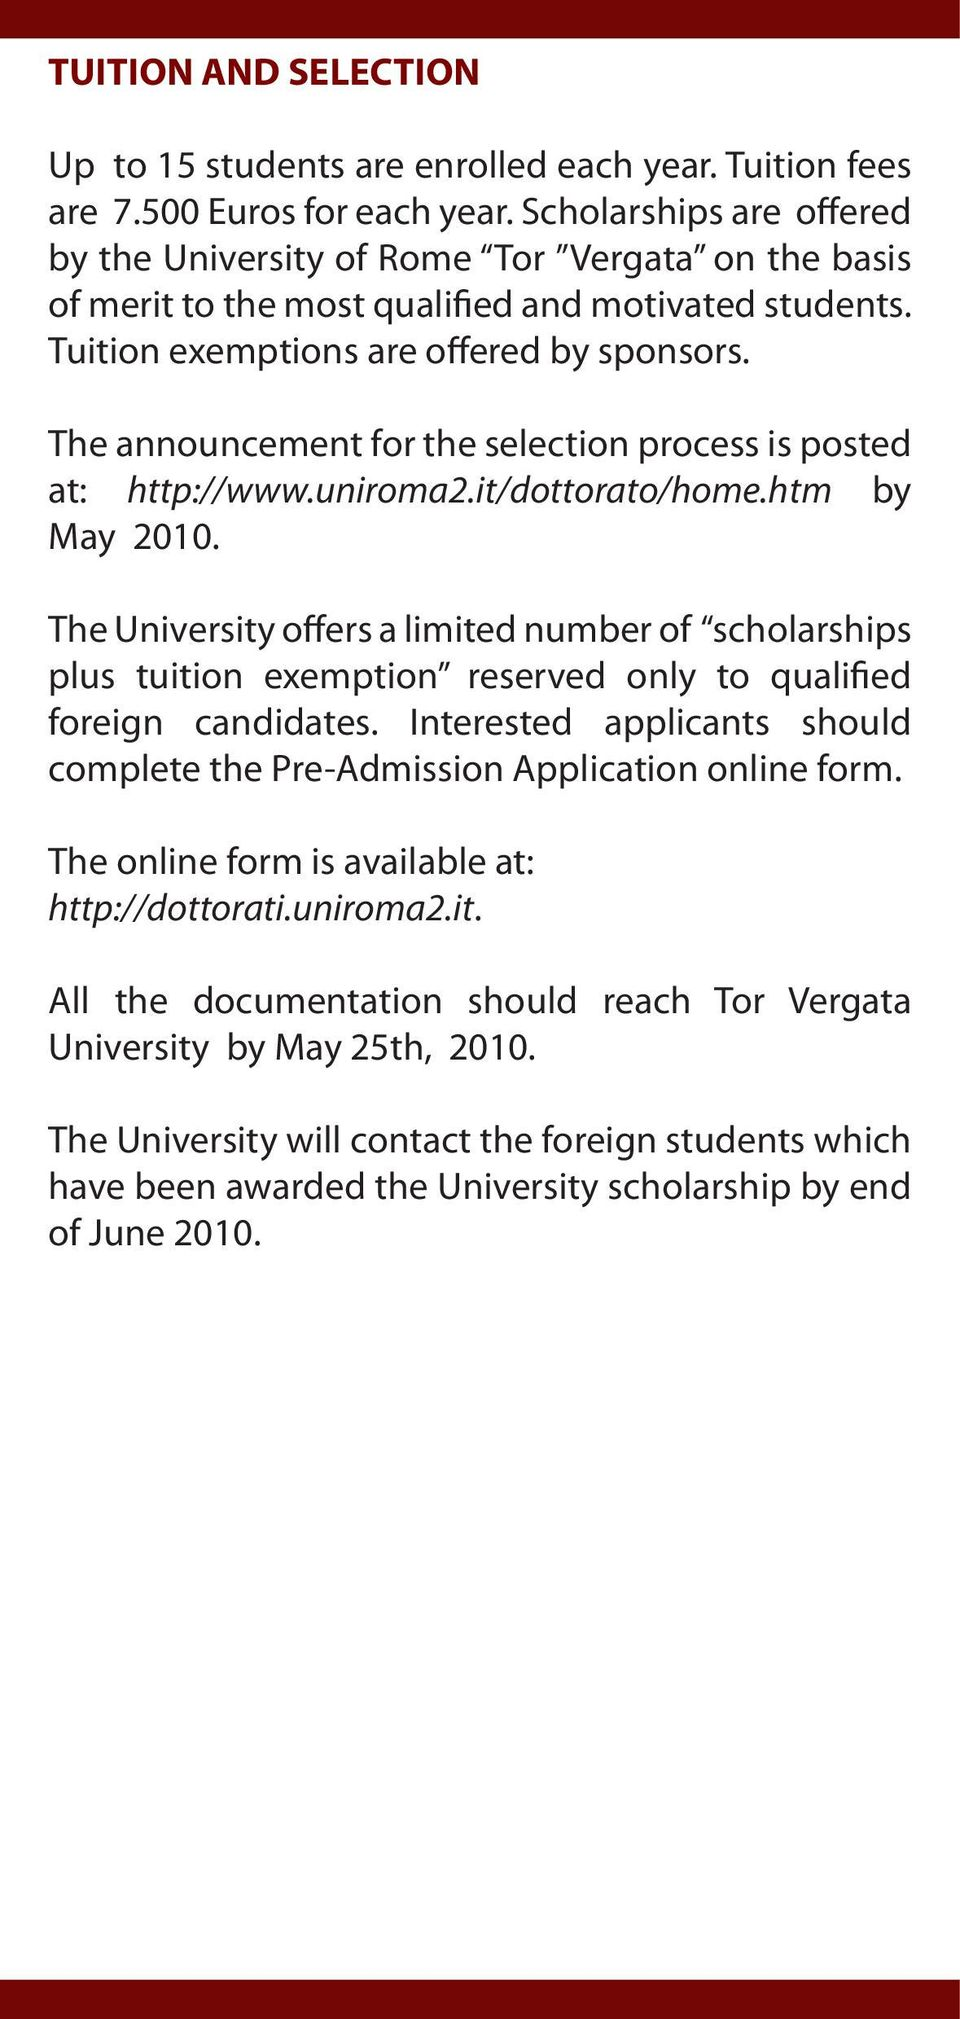 The announcement for the selection process is posted at: http://www.uniroma2.it/dottorato/home.htm by May 2010.